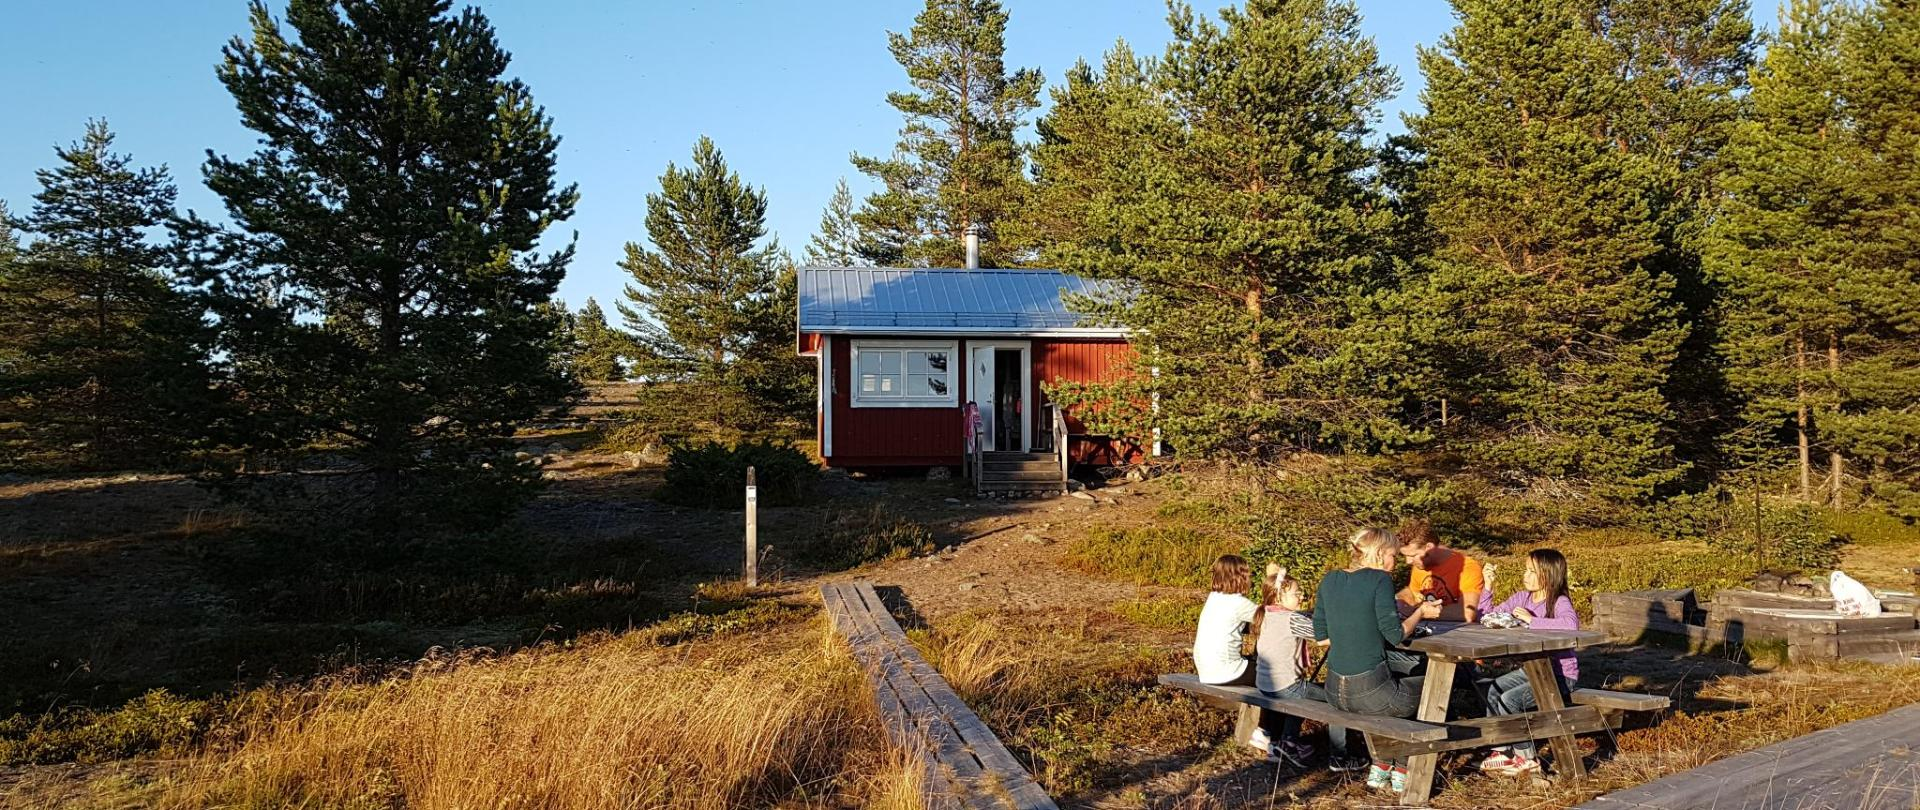 Piteå Island Cottages by Guide Natura Stor-Räbben-2.jpg